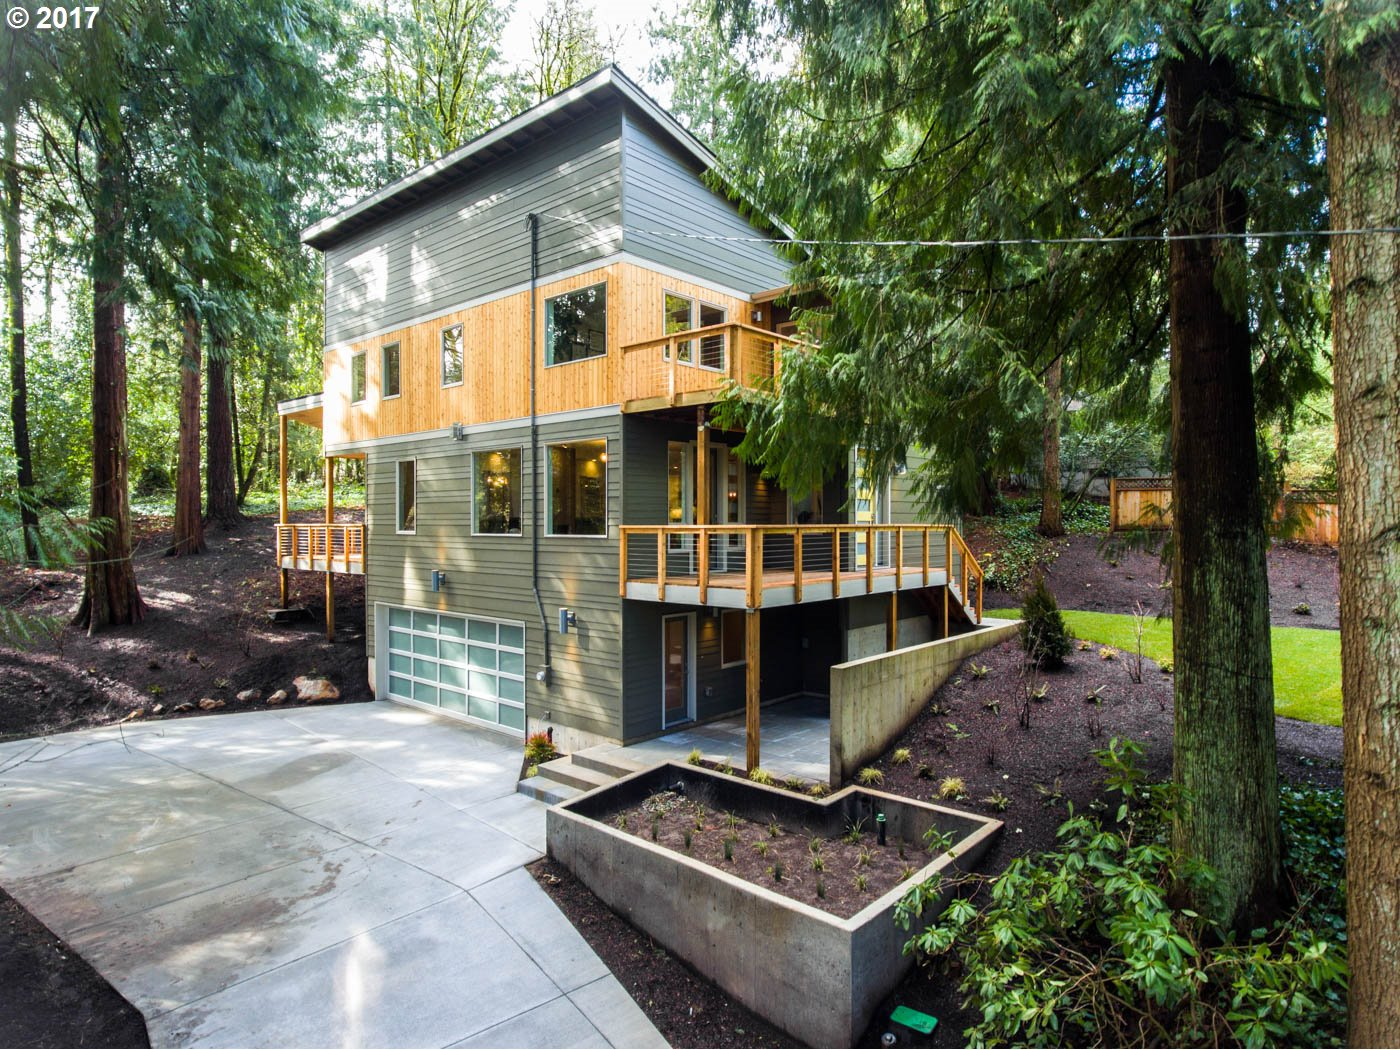 3046 square feet covered area  bathrooms  built in 2017,Portland, OR